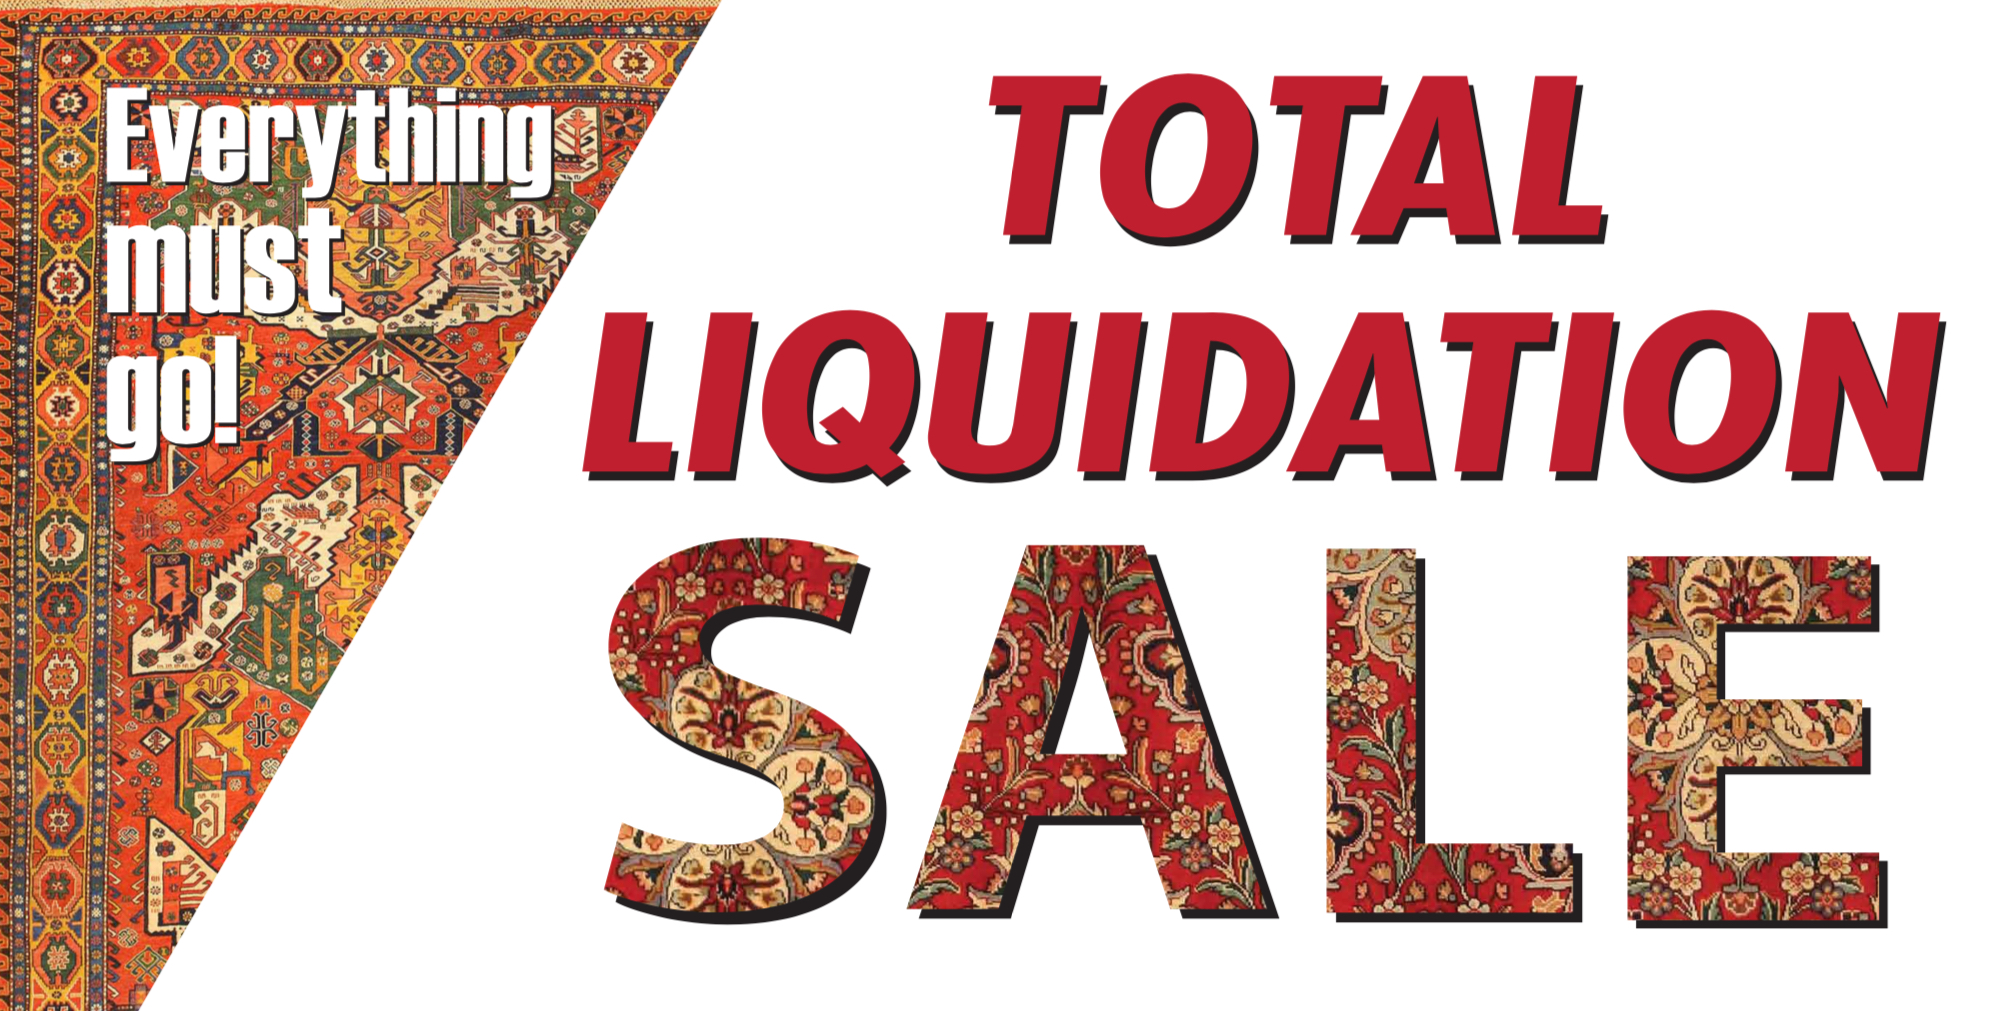 Shop Our Total Liquidation Sale